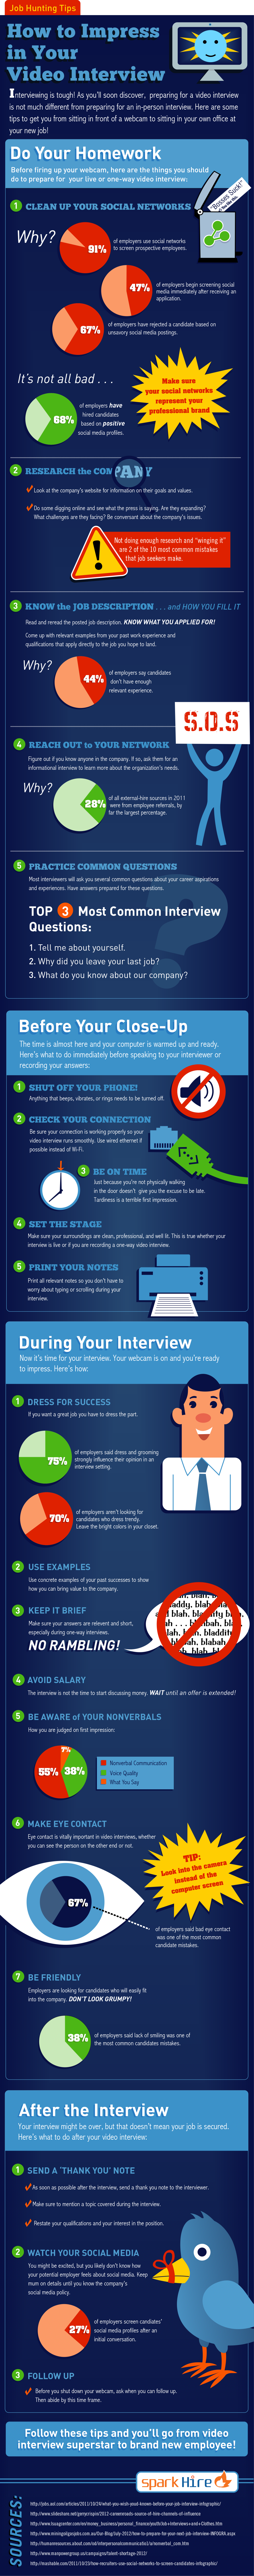 How to Impress Potential Employers in a Video Interview [Infographic] - Neville on WordPress.com